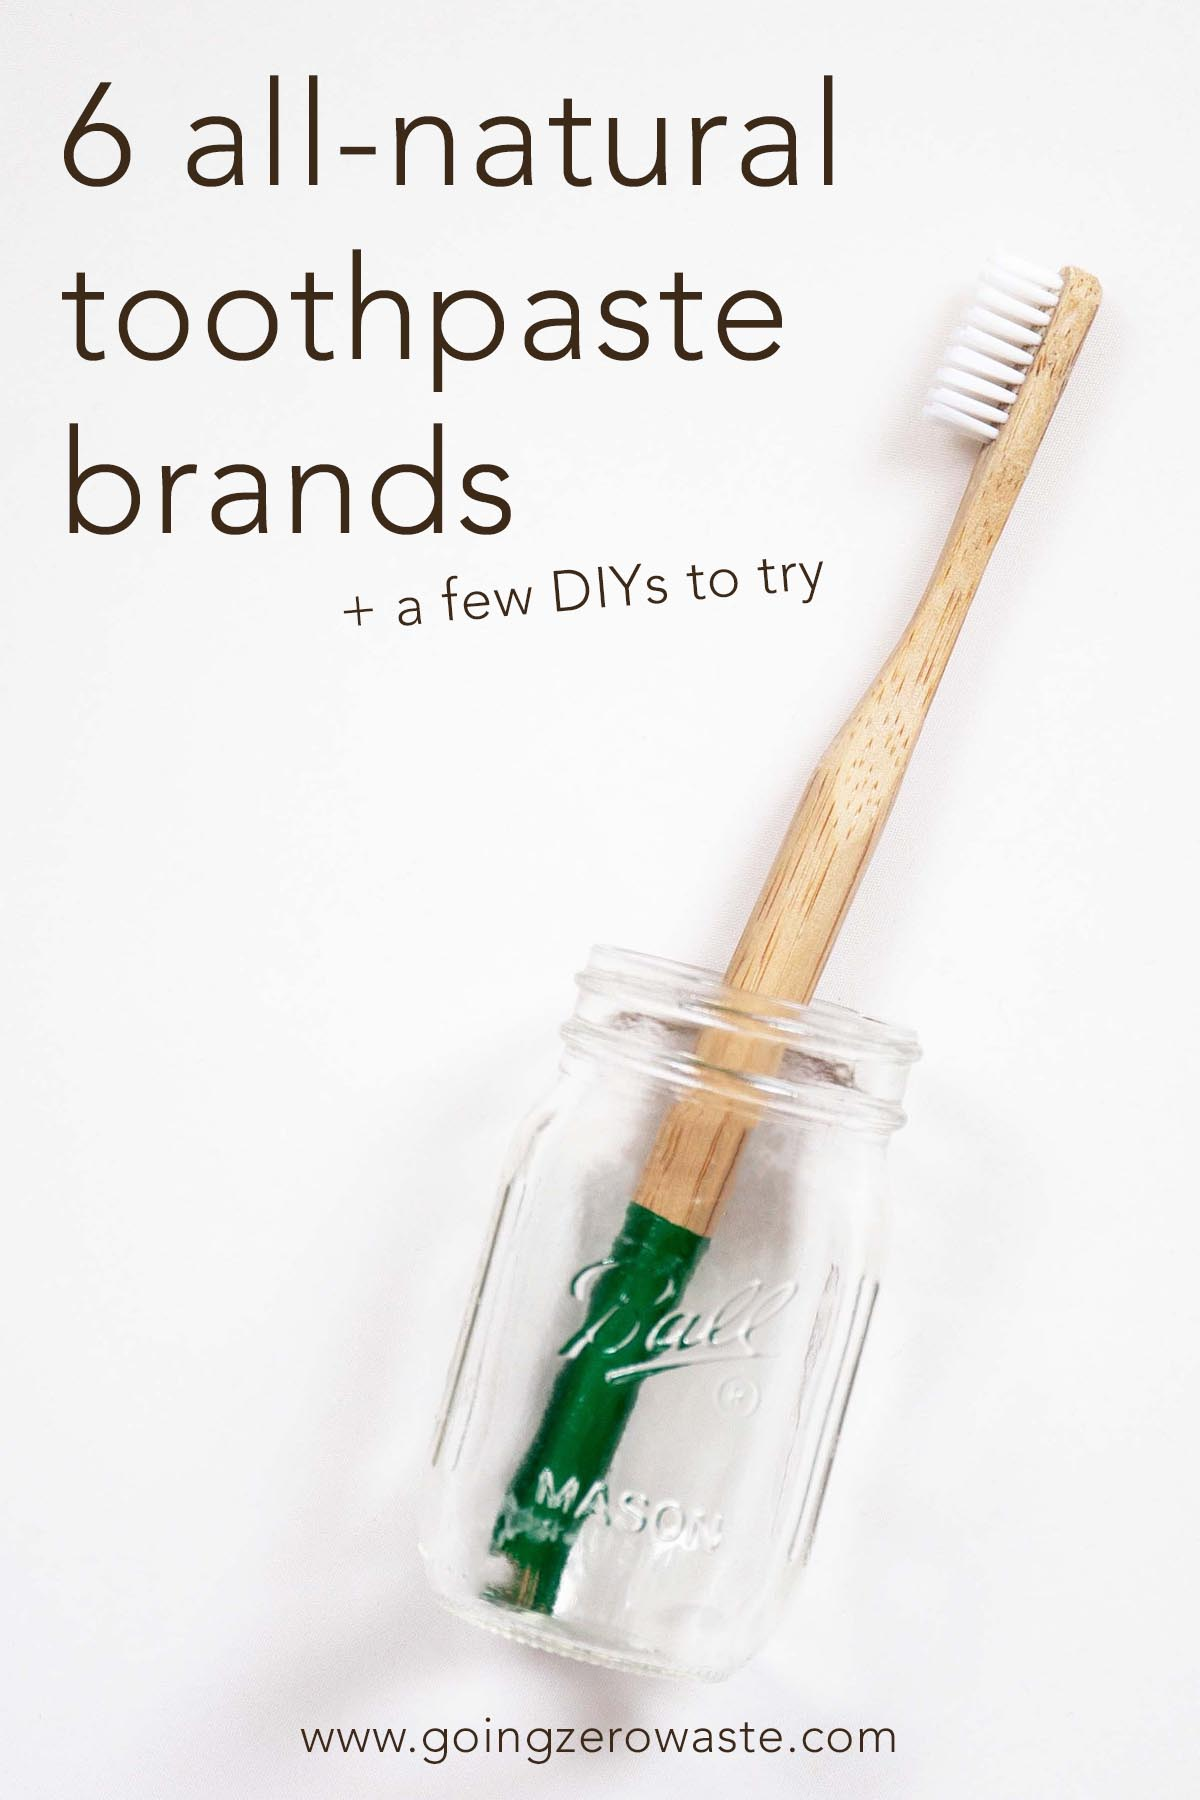 6 all-natural toothpaste brands plus a few DIY brands to try from www.goingzerowaste.com #toothpaste #oralhealth #ecofriendly #zerowaste #toothbrush #toothpowder #diy #allnatural